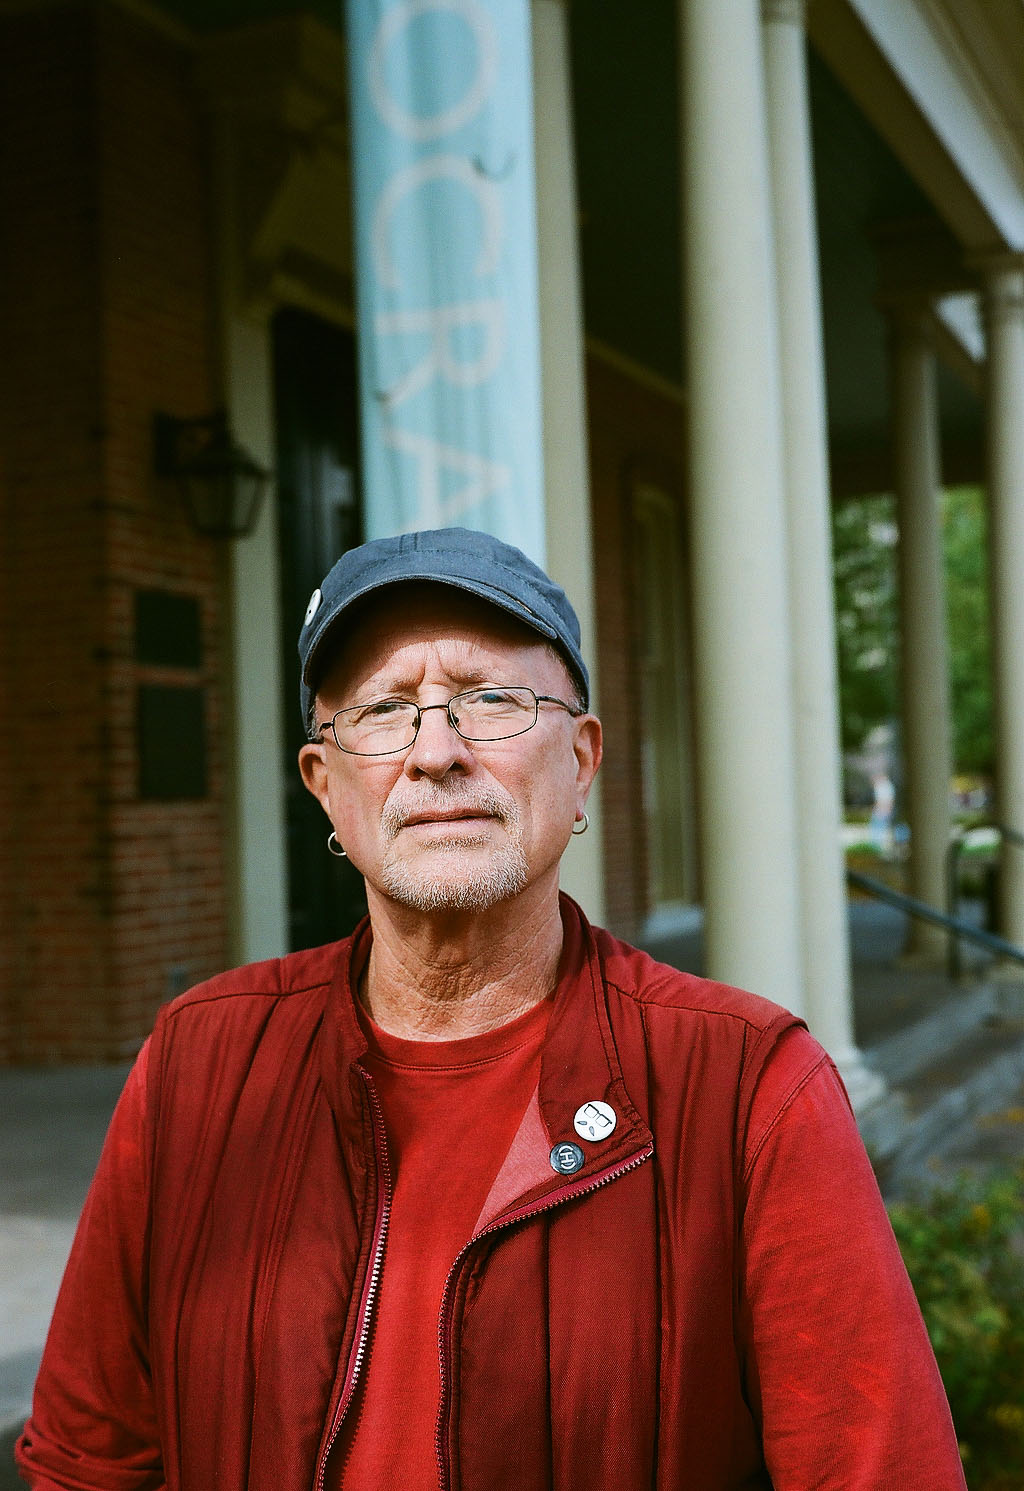 """Let's dust off our imaginations"": In Conversation with Bill Ayers"